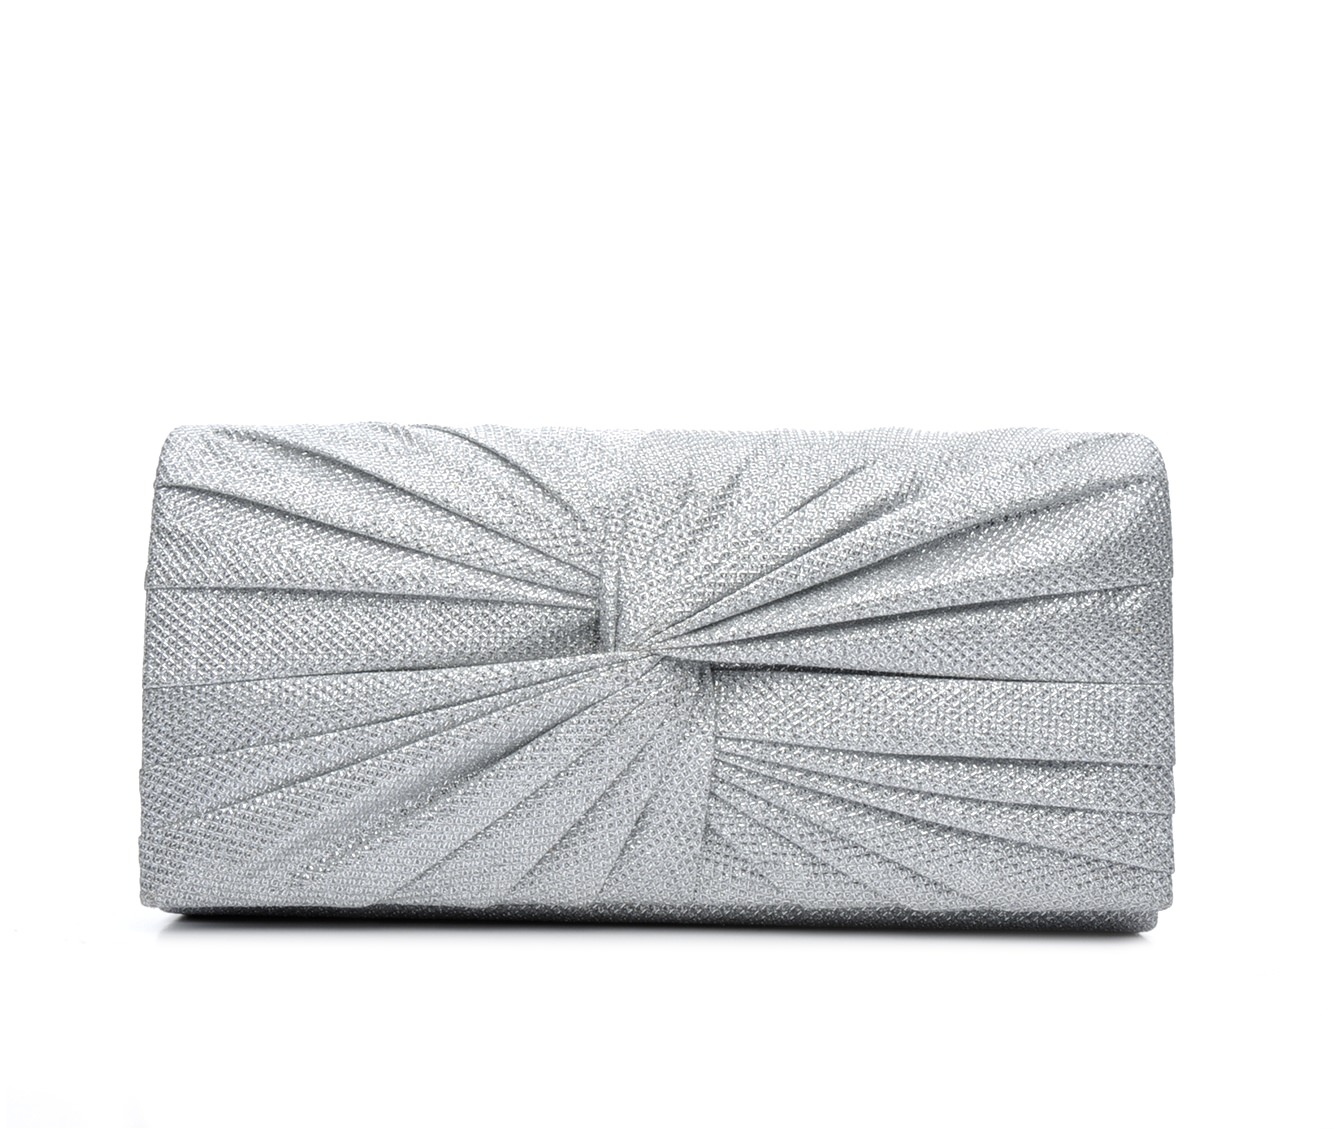 Four Seasons Handbags Large Metallic Evening Clutch (Silver)